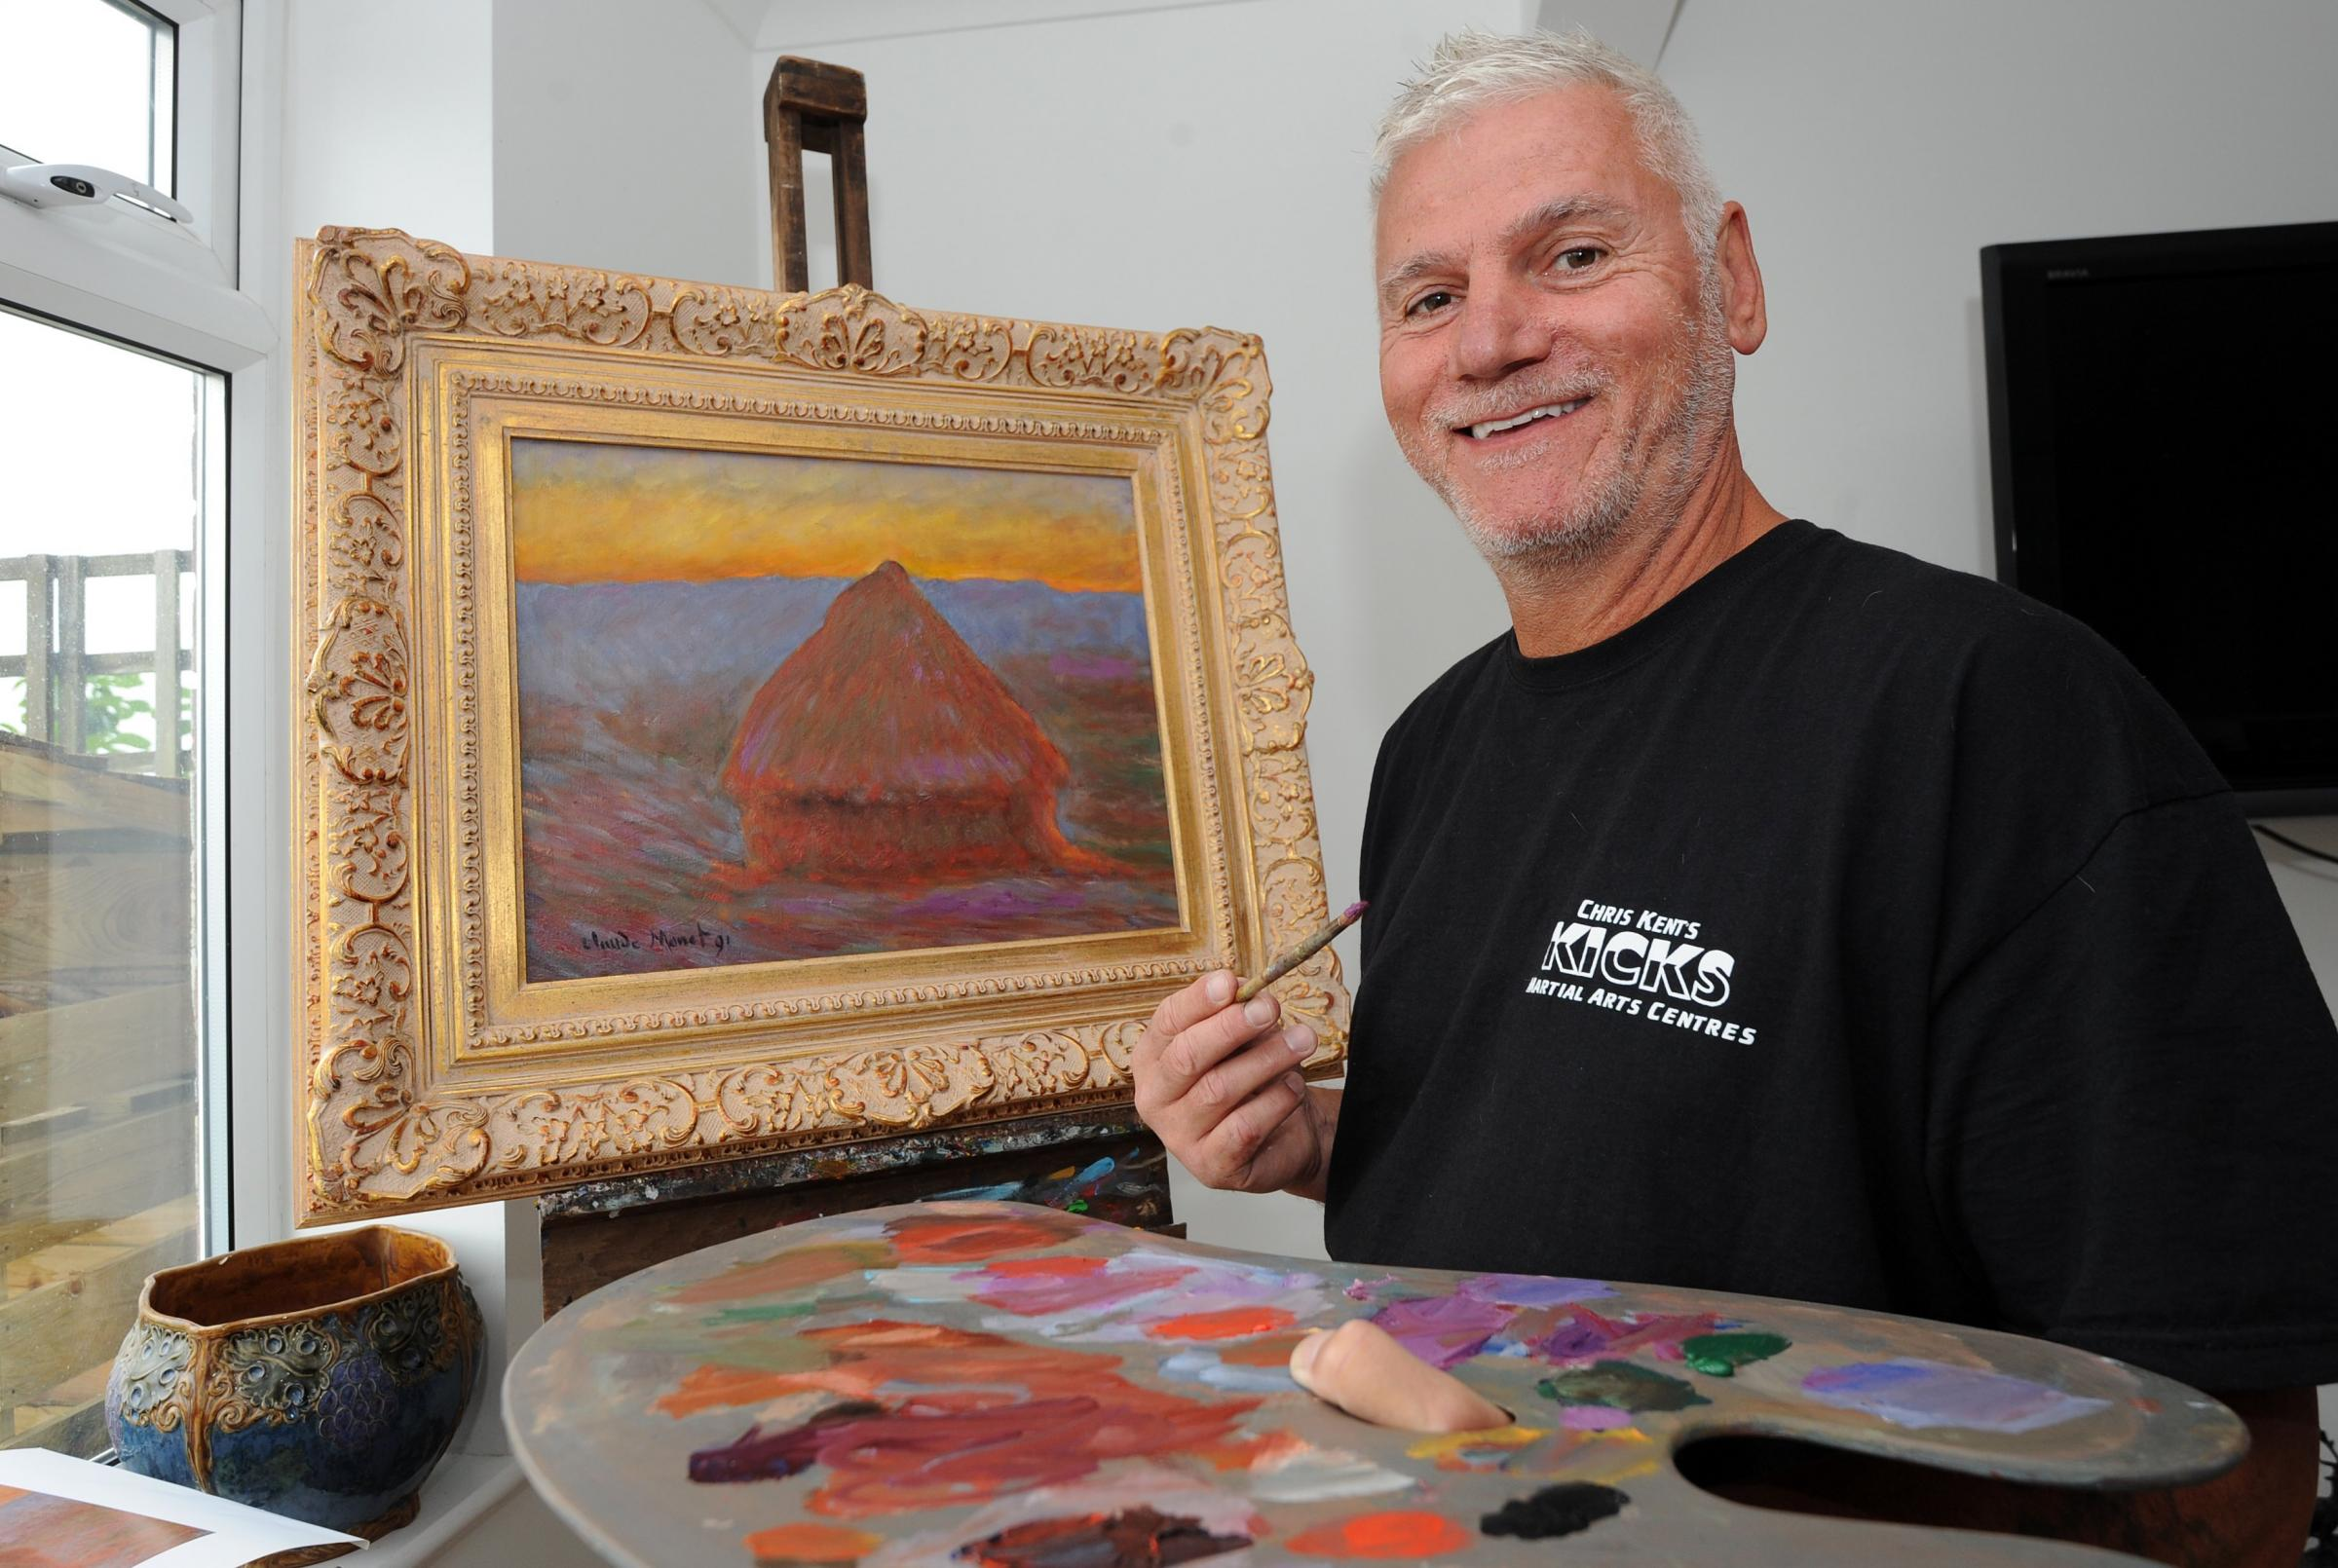 David Henty at work on his version of Monet's Haystacks.  Picture: Liz Finlayson